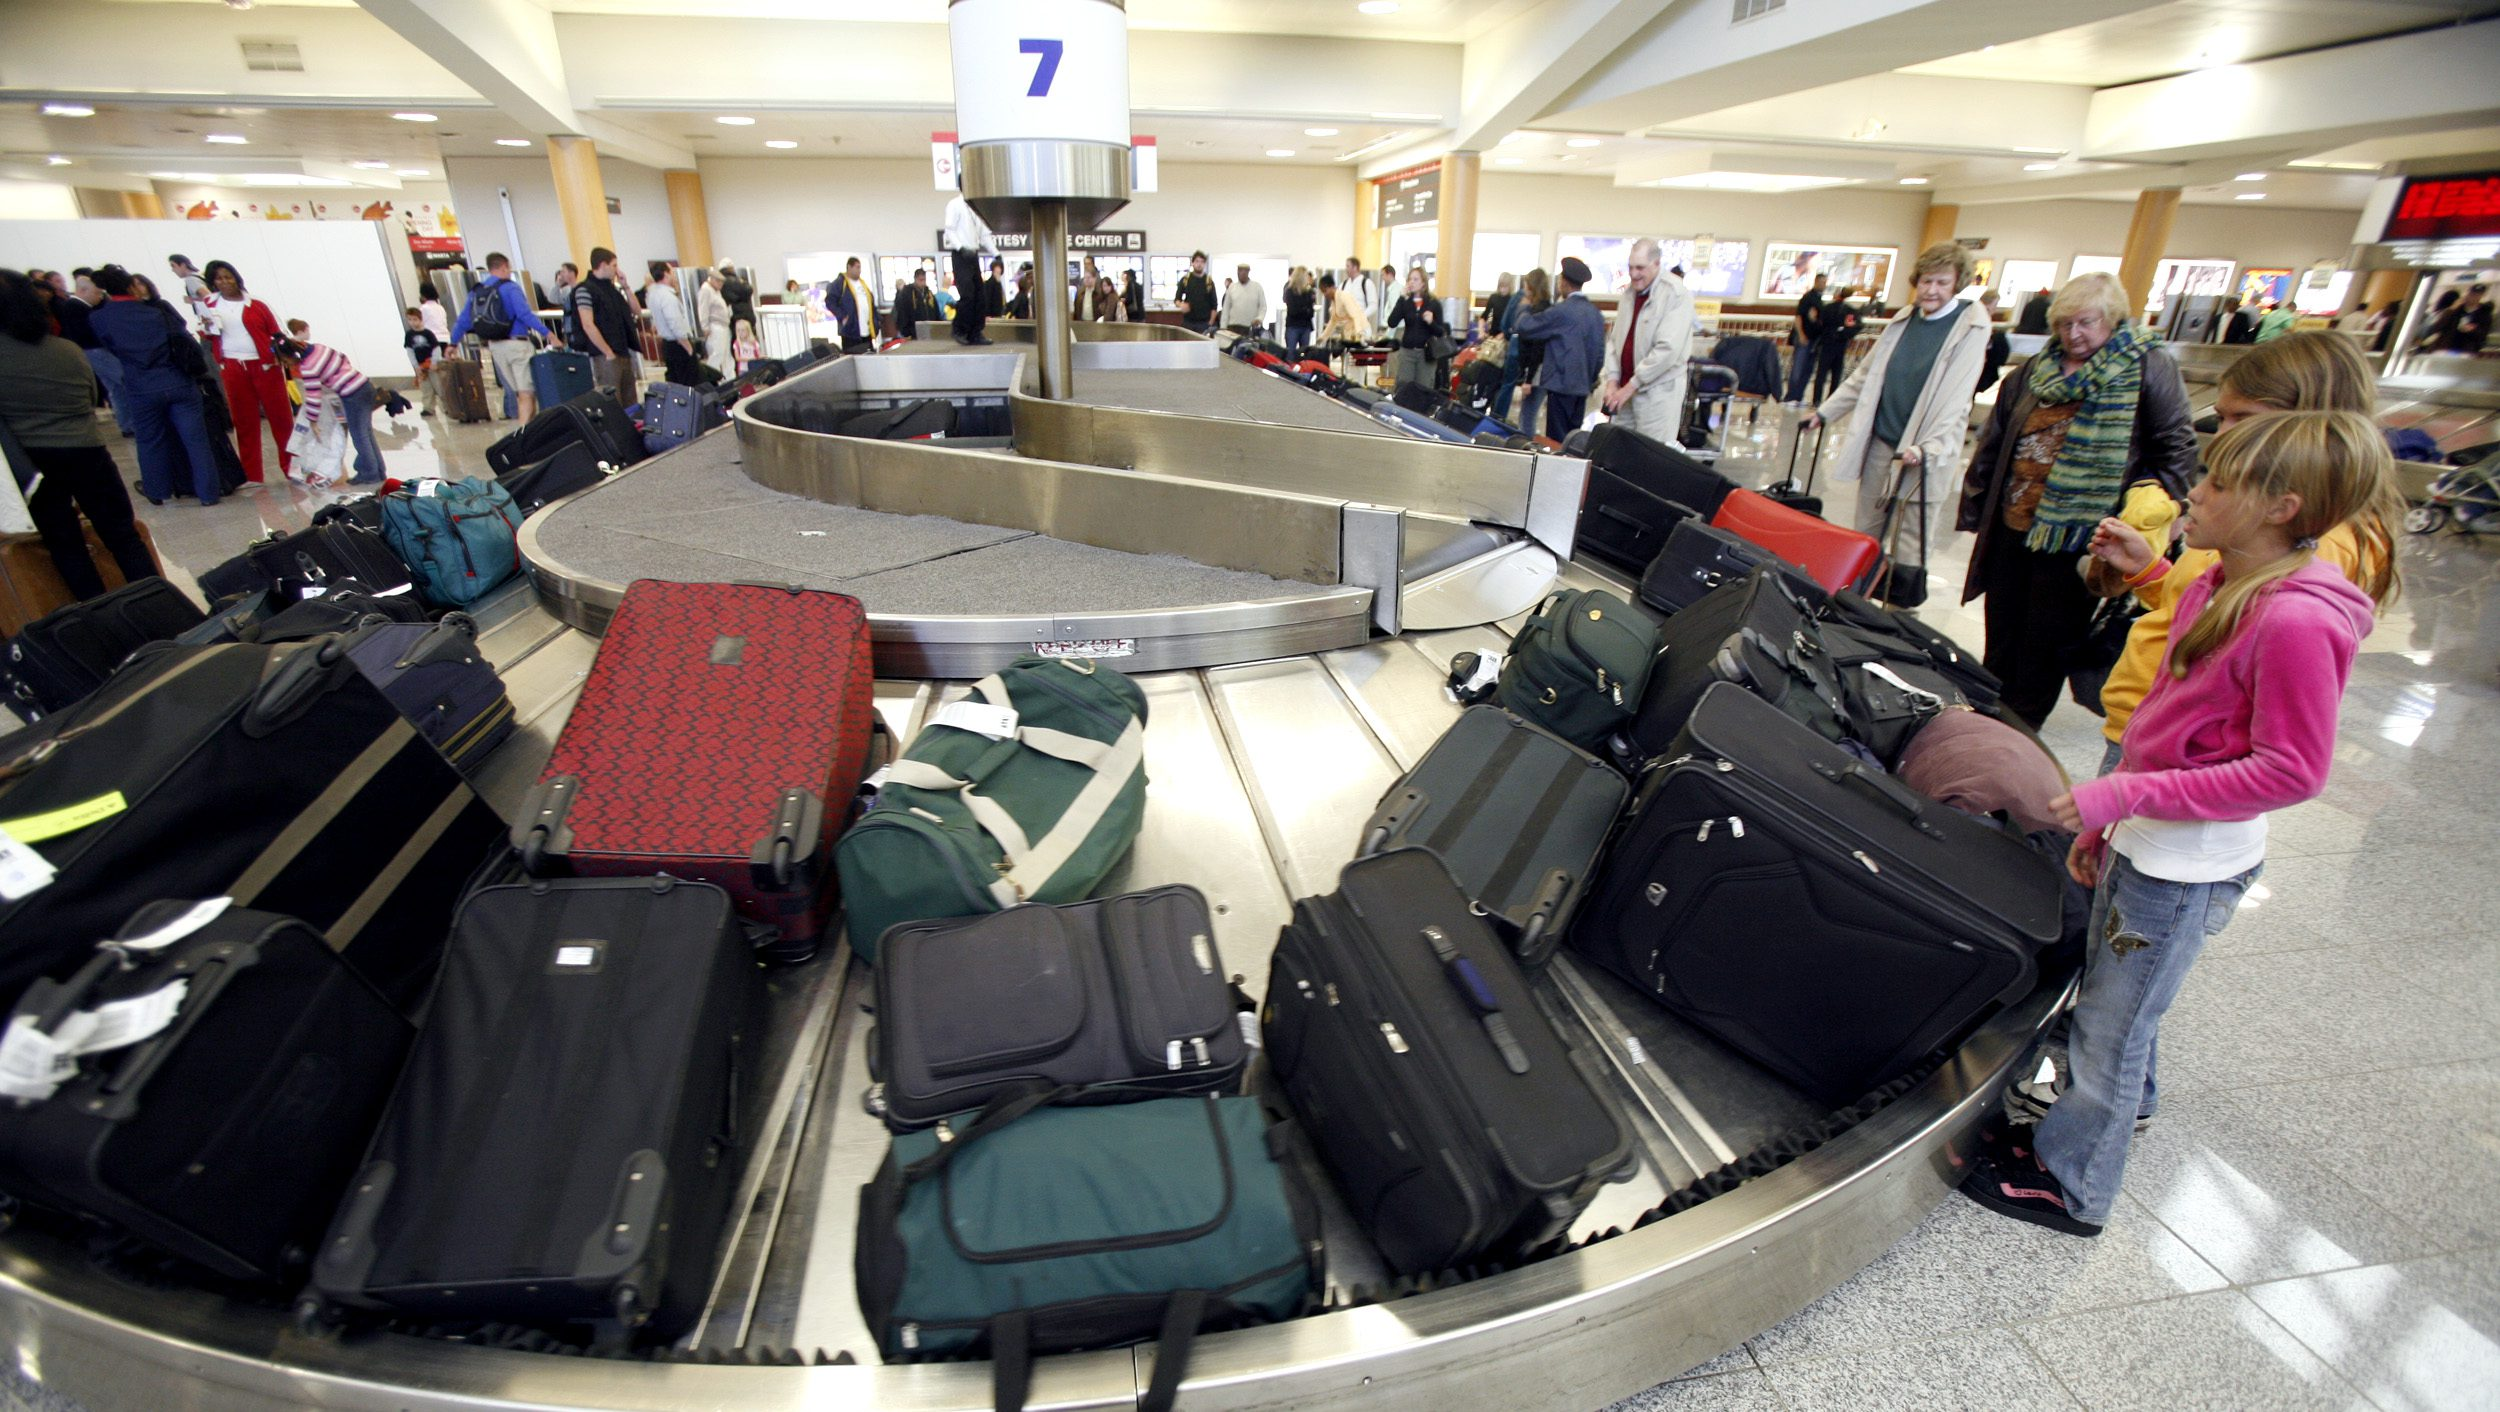 c070324dc Checked baggage fees have a hidden benefit for passengers—fewer flight  delays